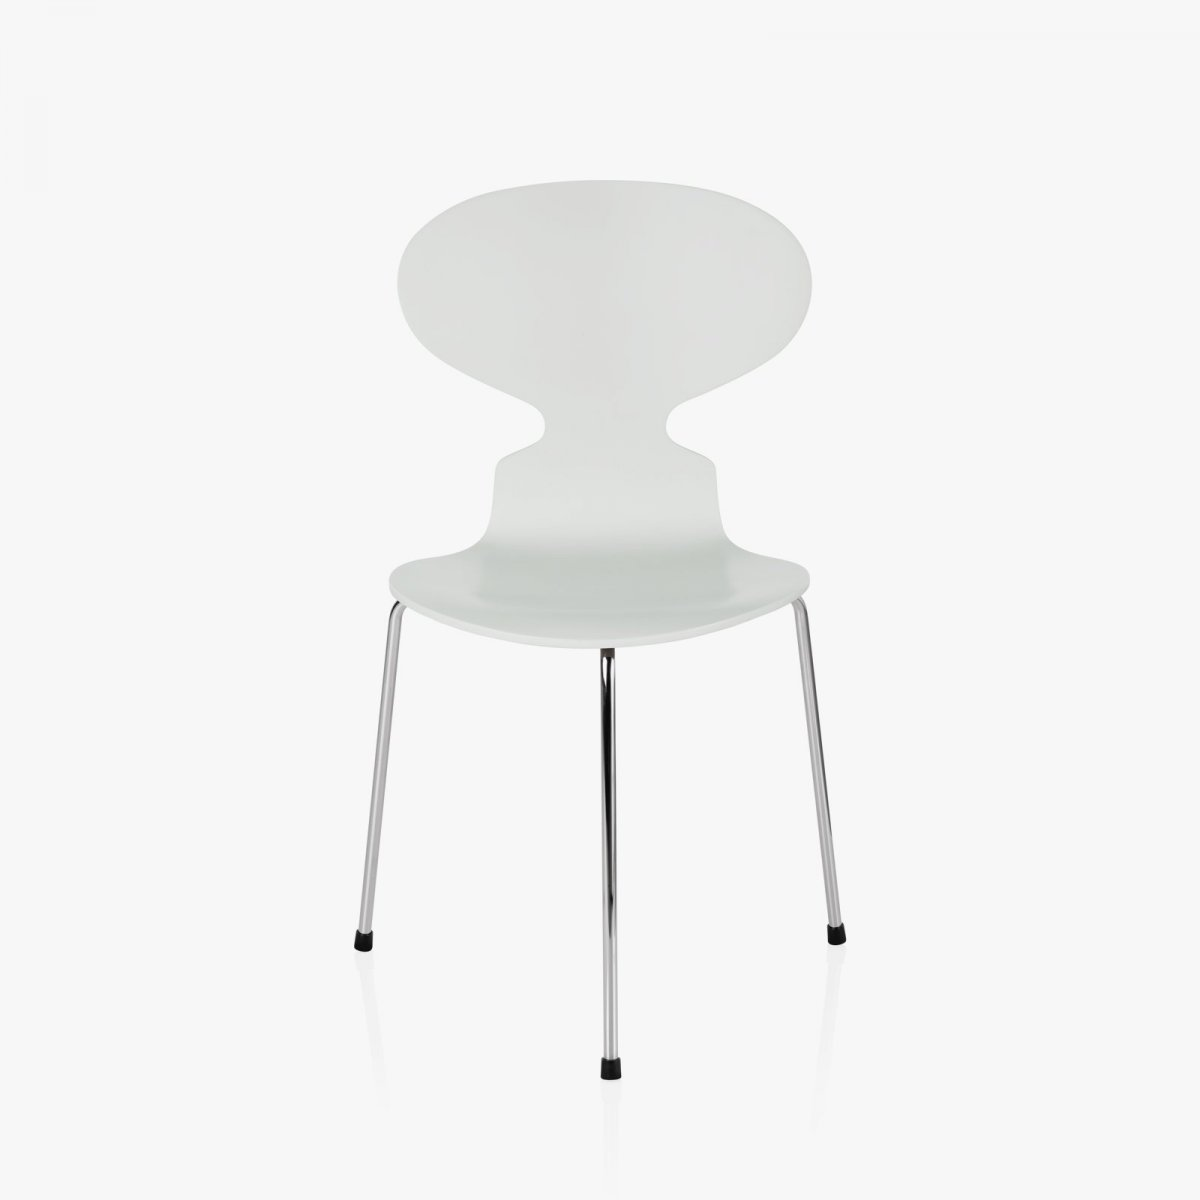 Ant chair 3100, white.